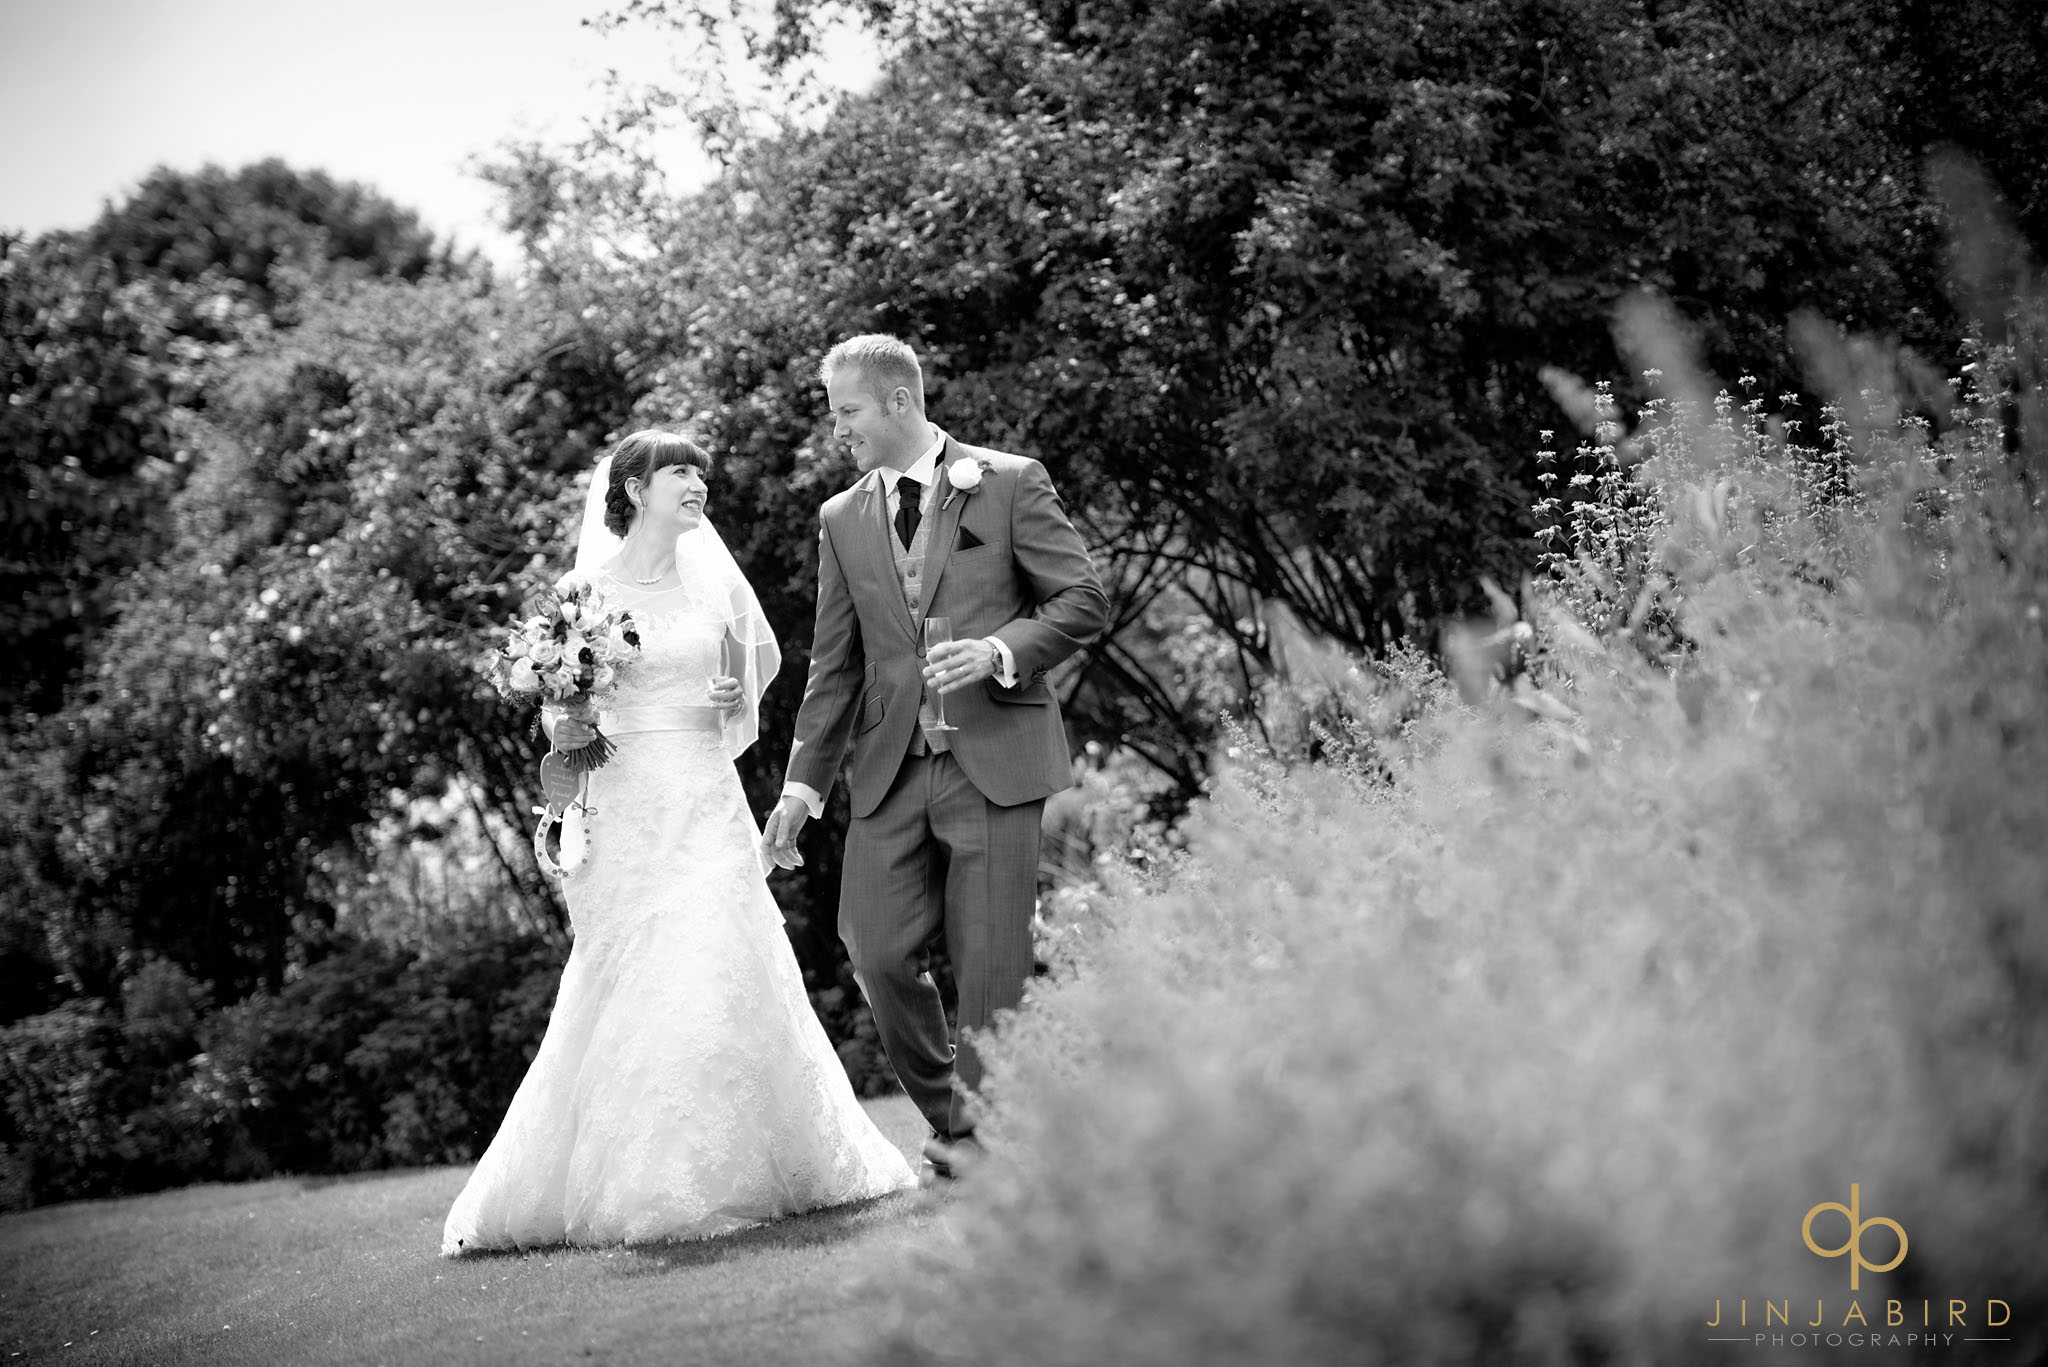 Wedding photographer Childerley Hall